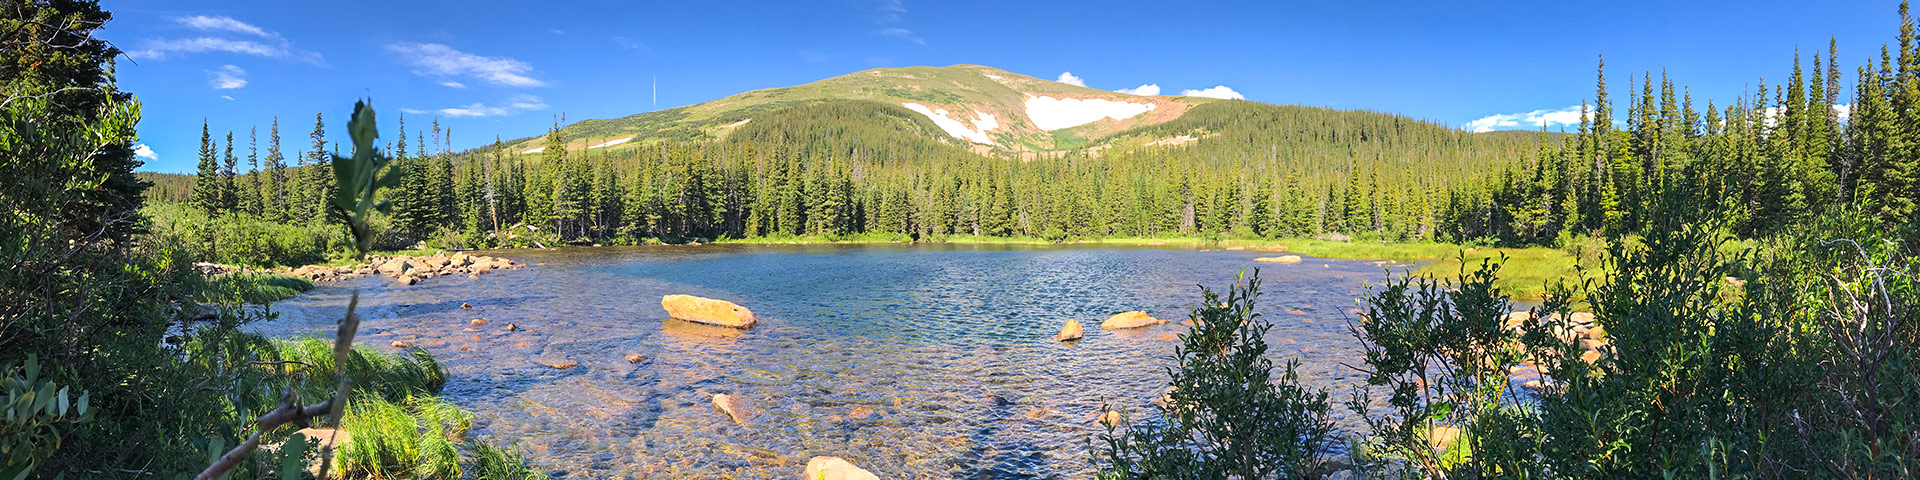 Panorama from the Rainbow Lake hike in Indian Peaks, Colorado